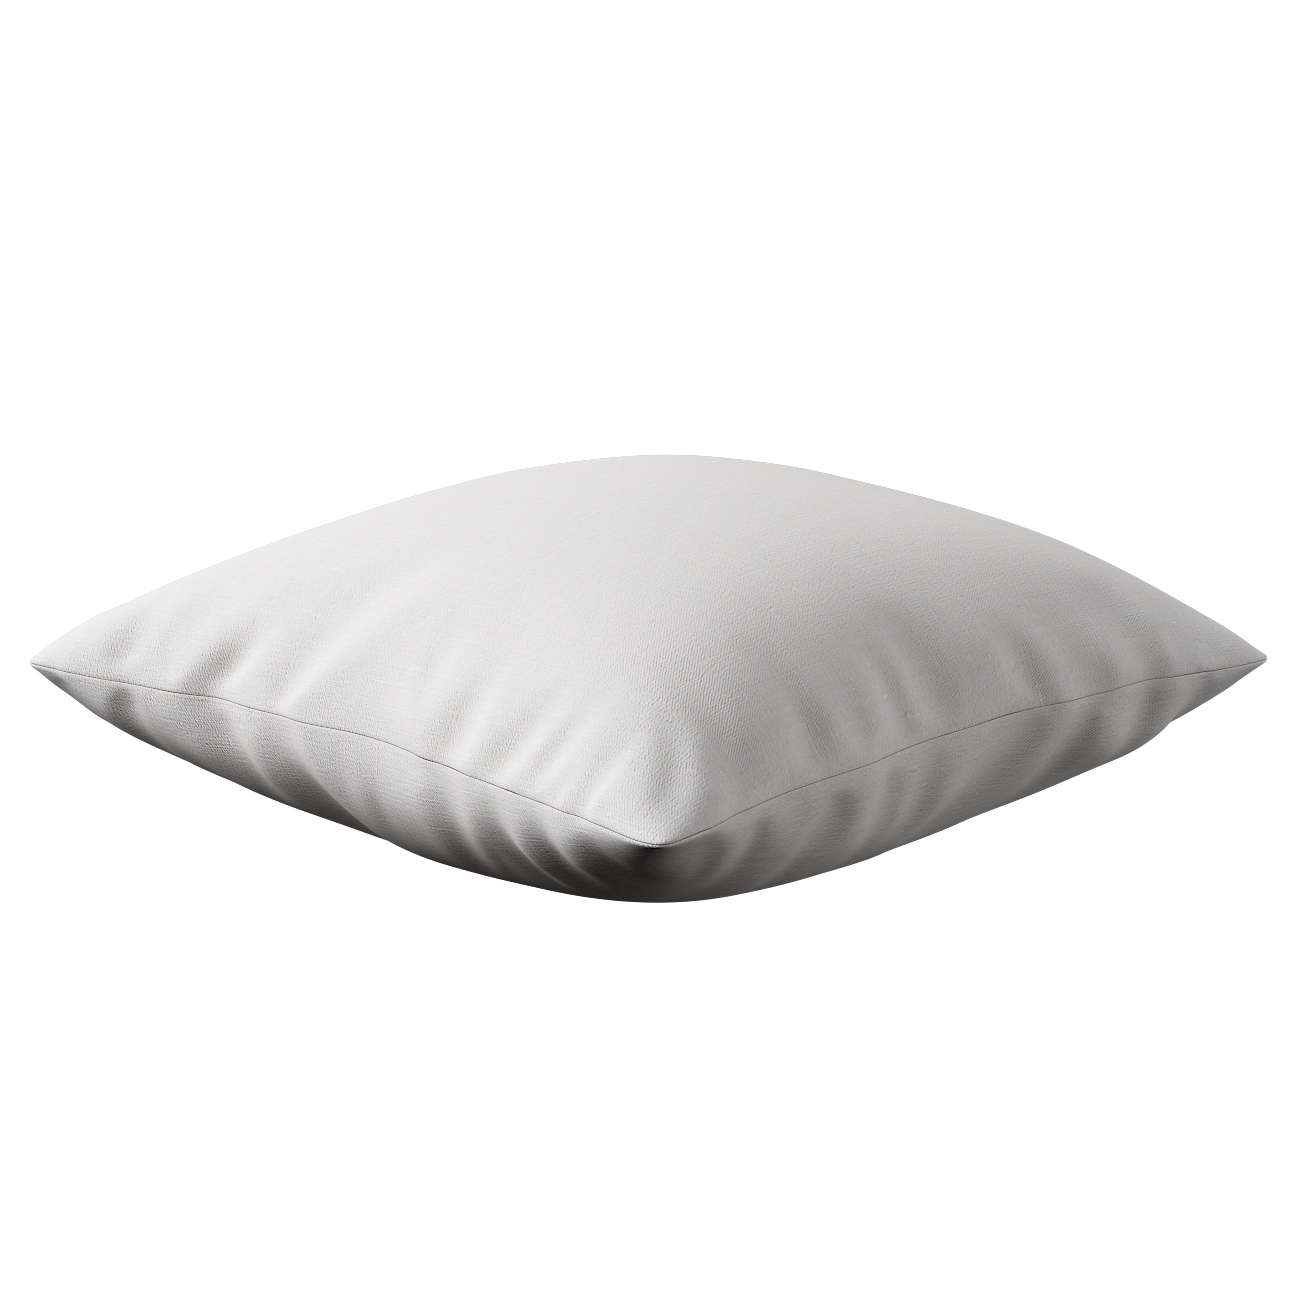 Milly cushion cover in collection Nature, fabric: 392-04